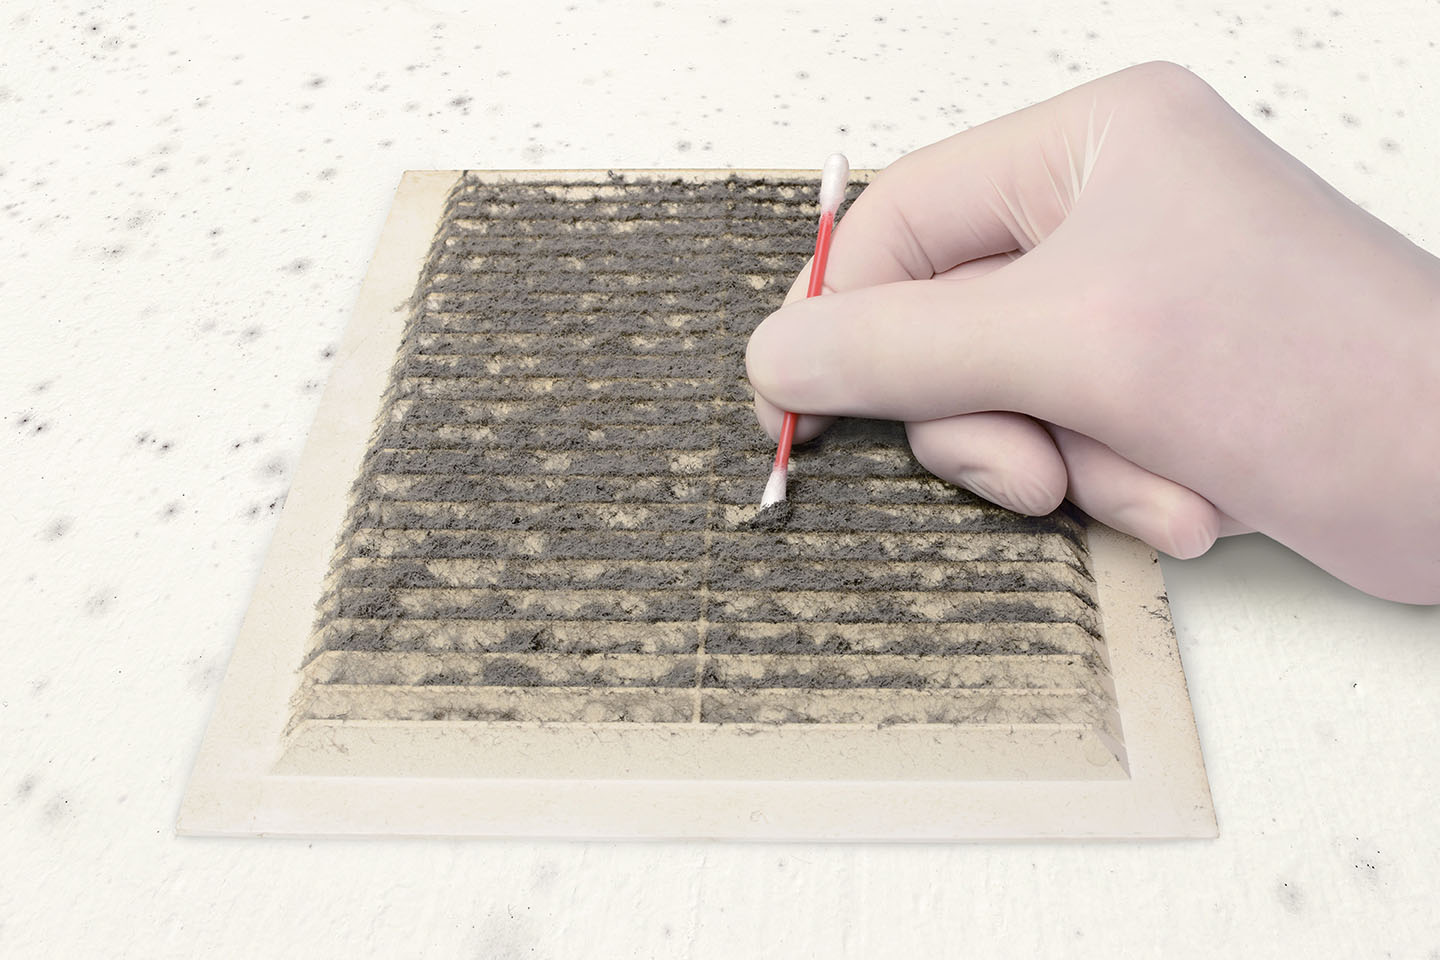 Dust testing by Precision Mold Testing